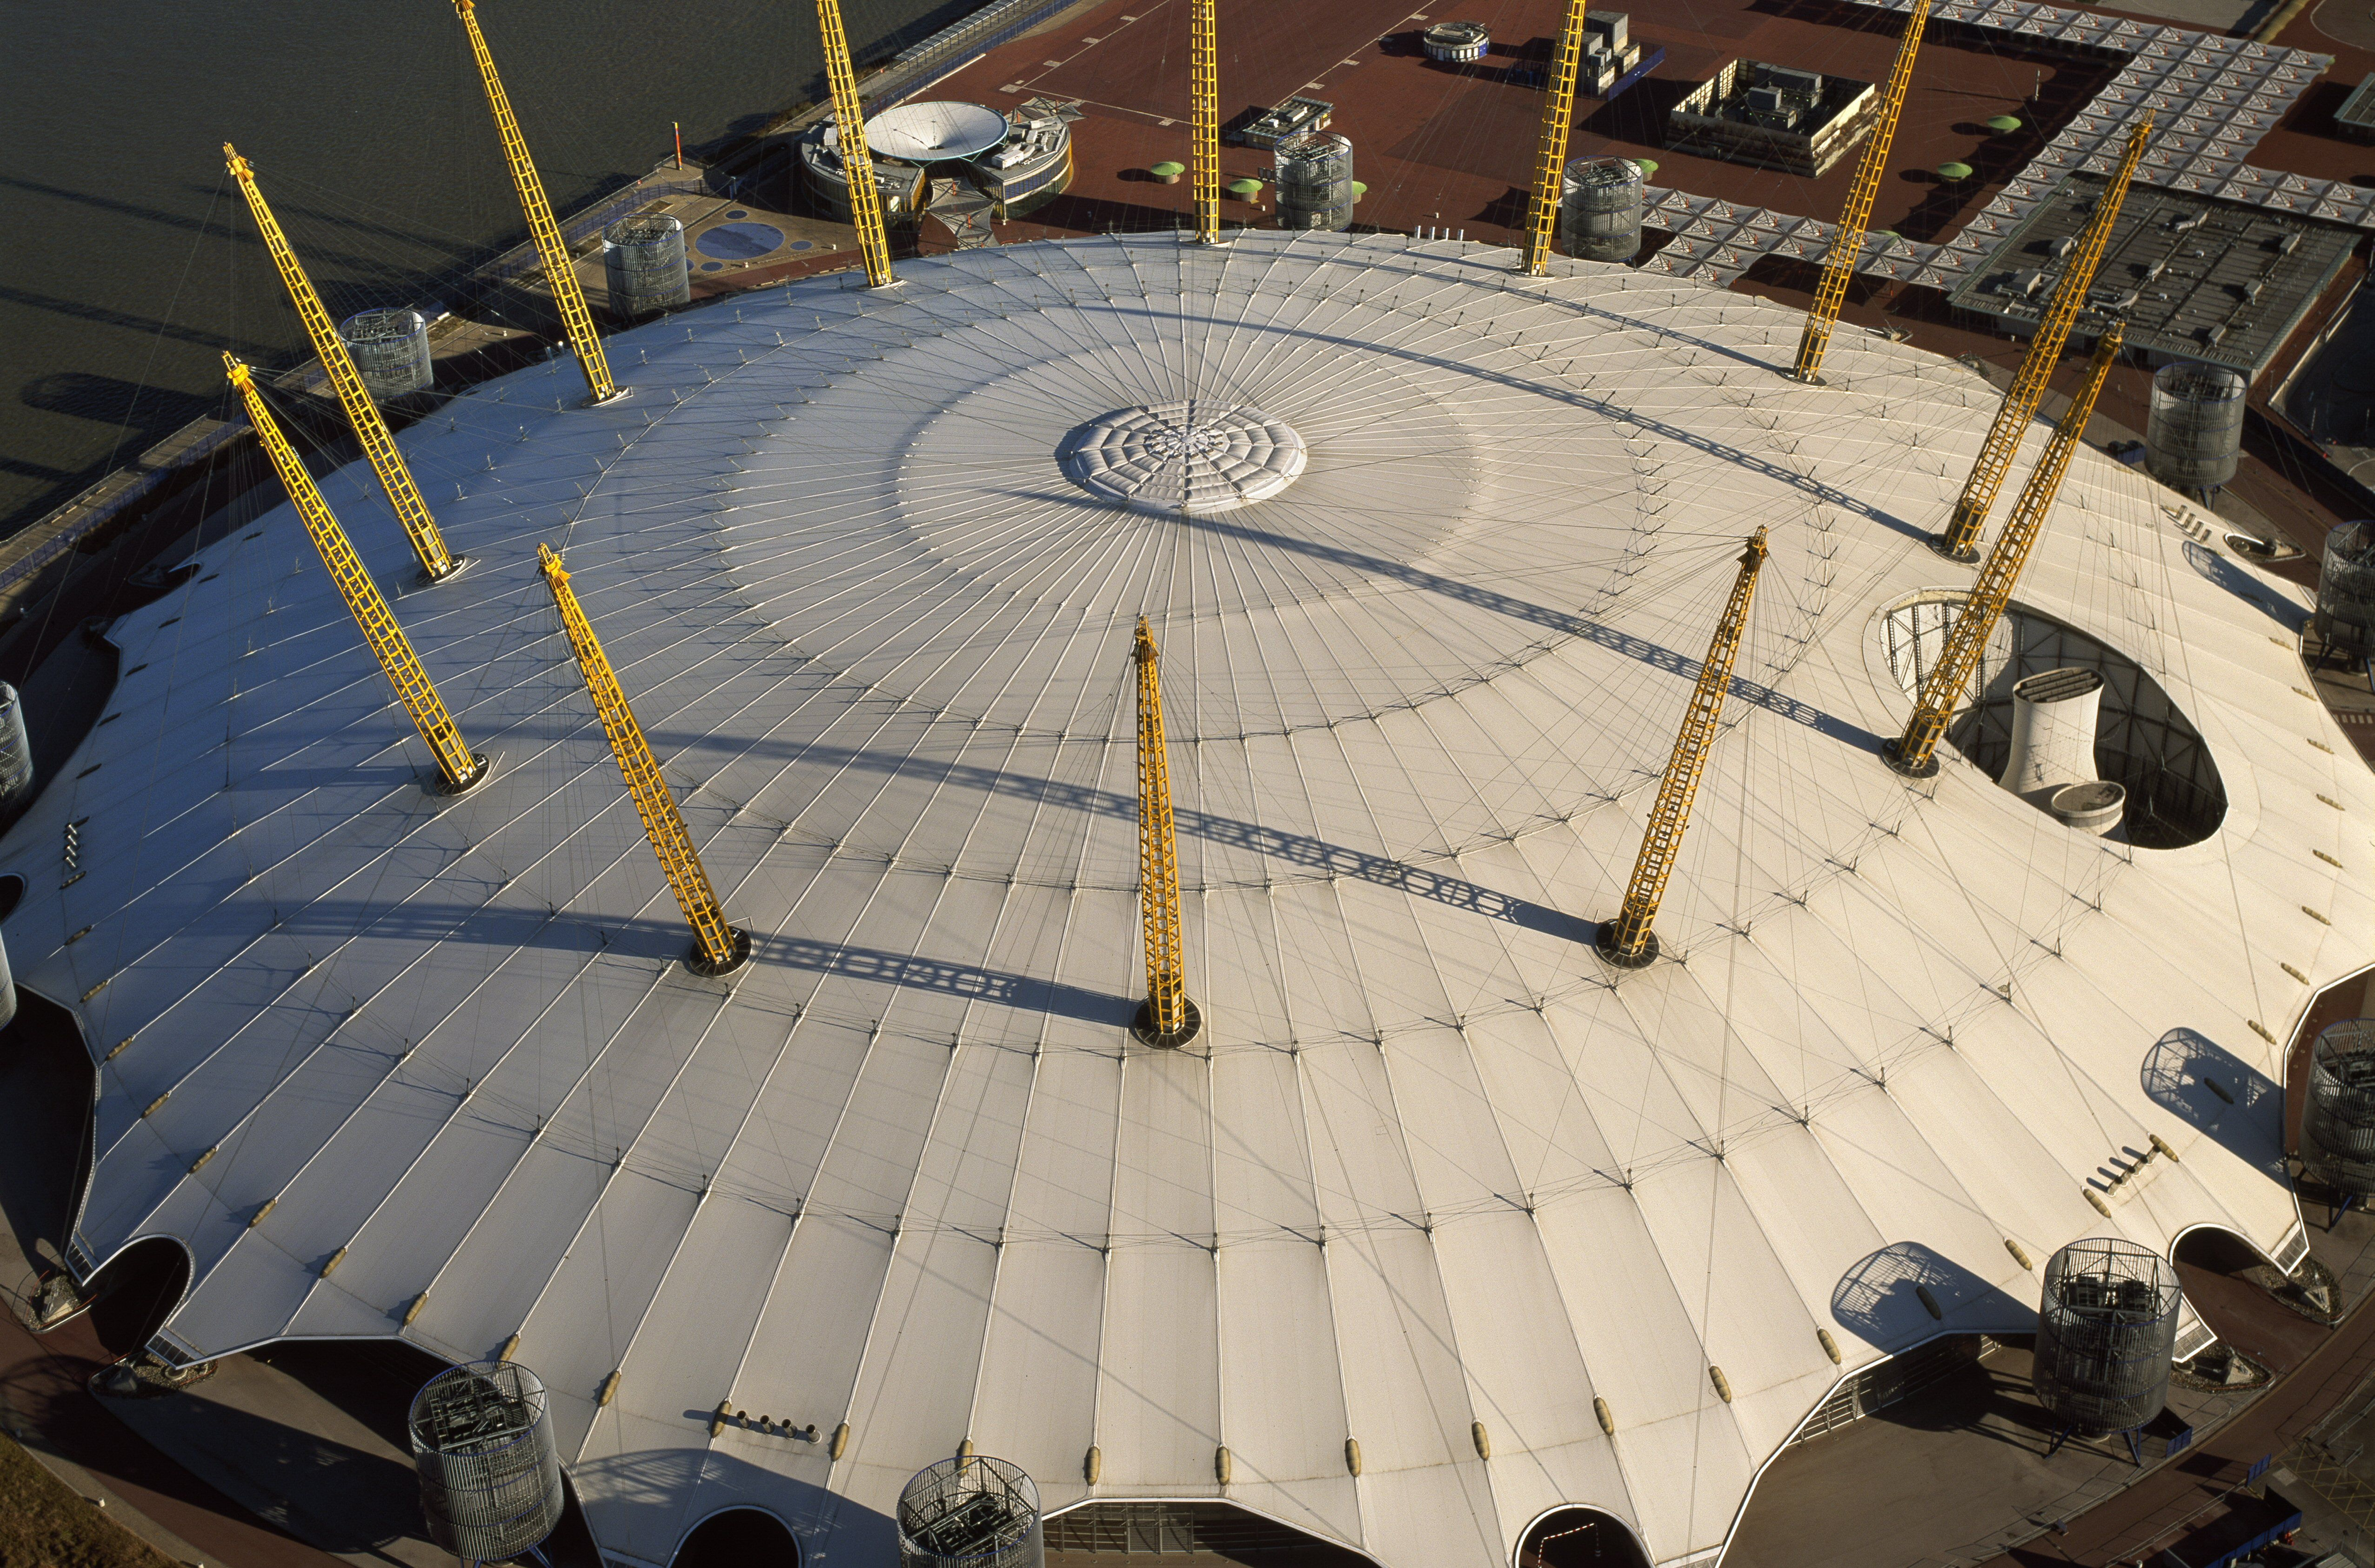 Tensile architecture with 12 support poles on the Millennium Dome in London, England